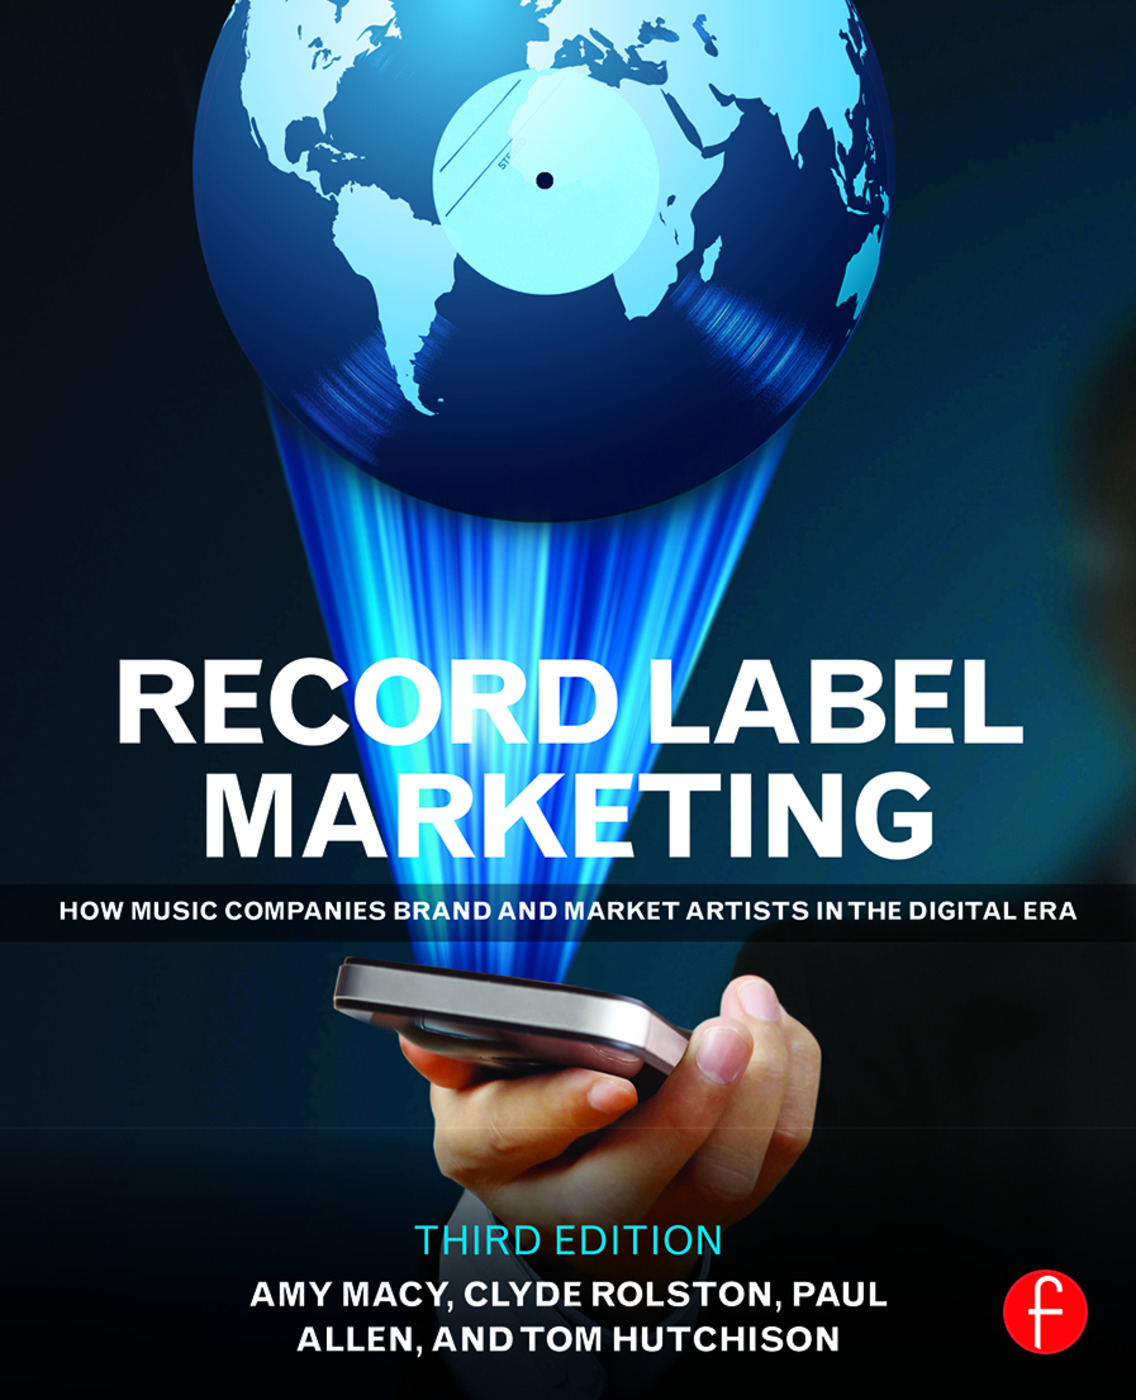 Record Label Marketing: How Music Companies Brand and Market Artists in the Digital Era book cover